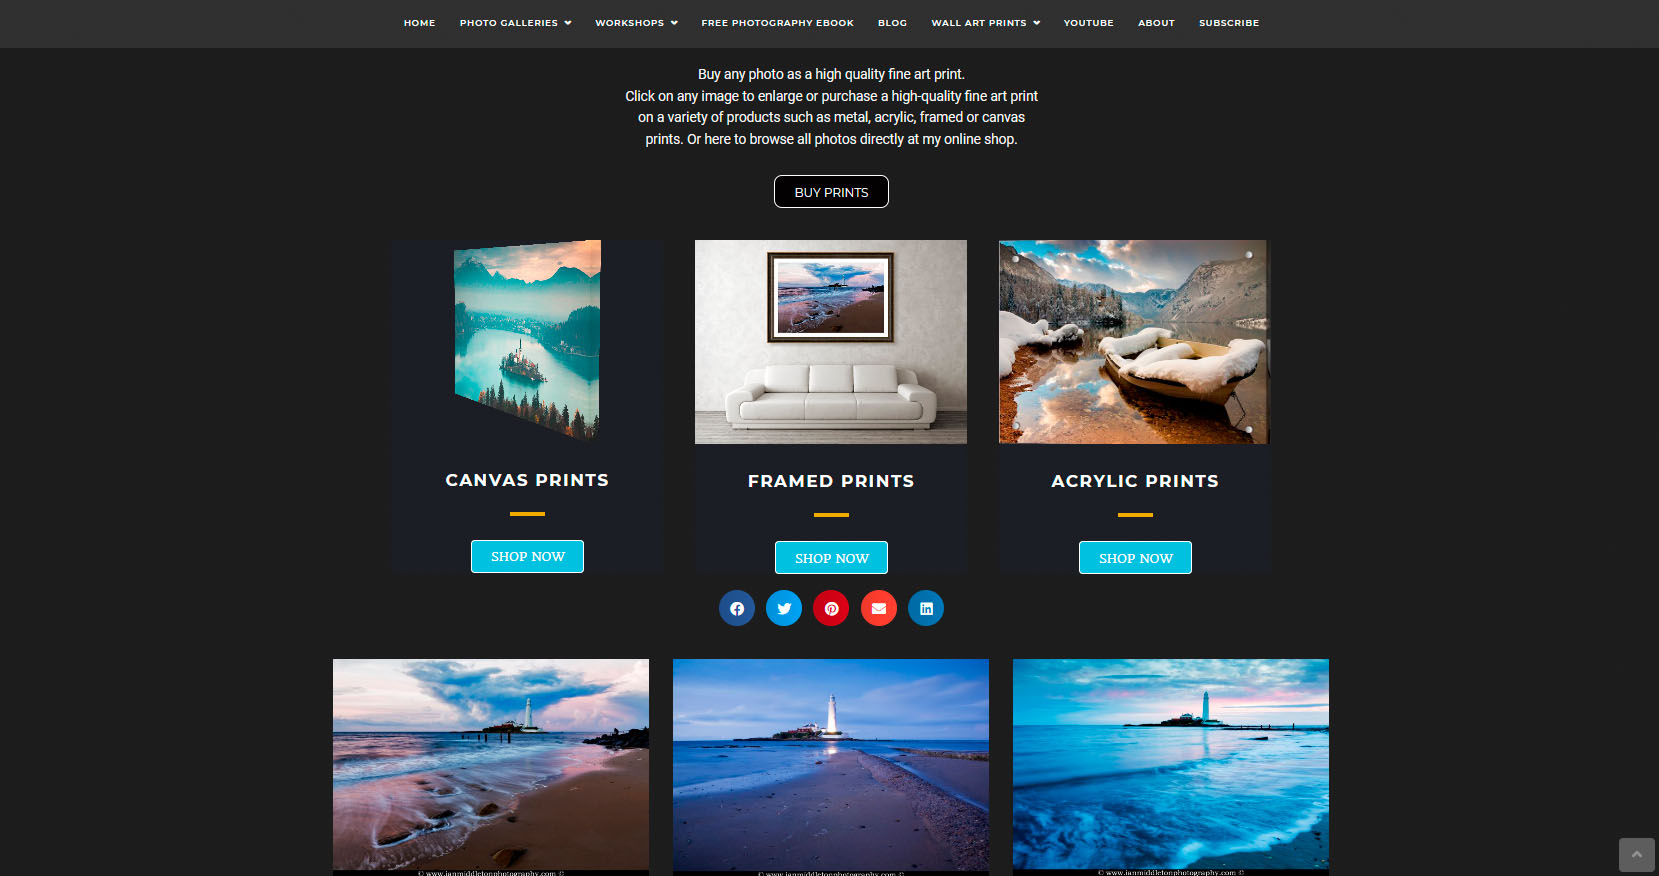 Example of a website photo gallery setup to sell prints.